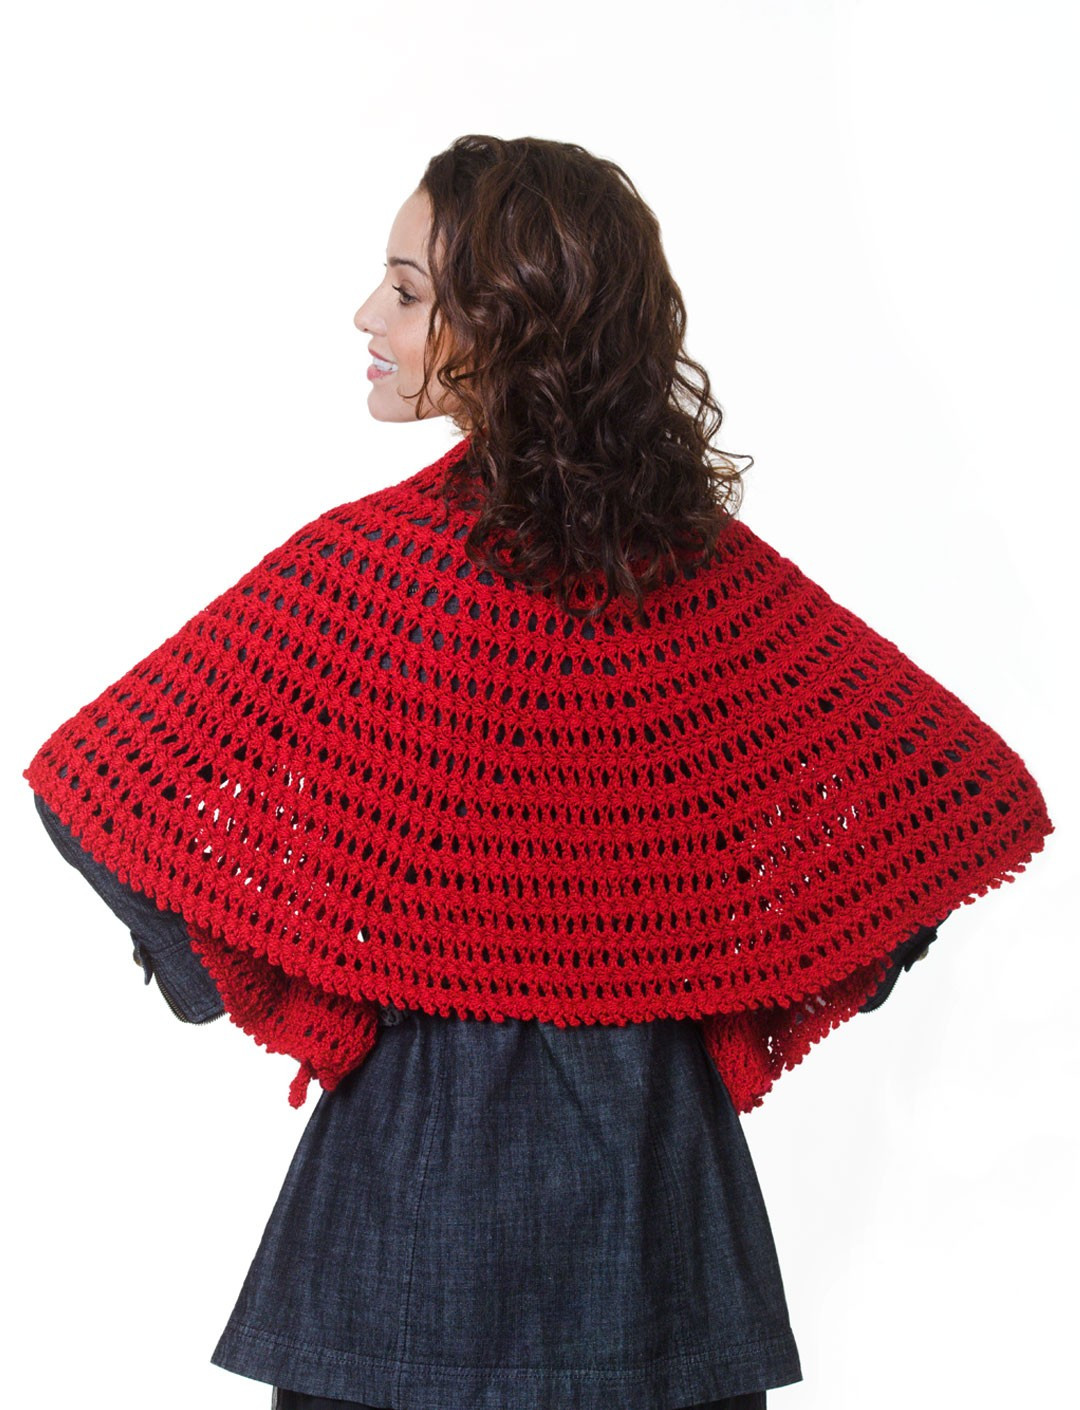 Awesome Caron Nadia Shawl Crochet Pattern Caron Crochet Patterns Of Perfect 43 Pictures Caron Crochet Patterns